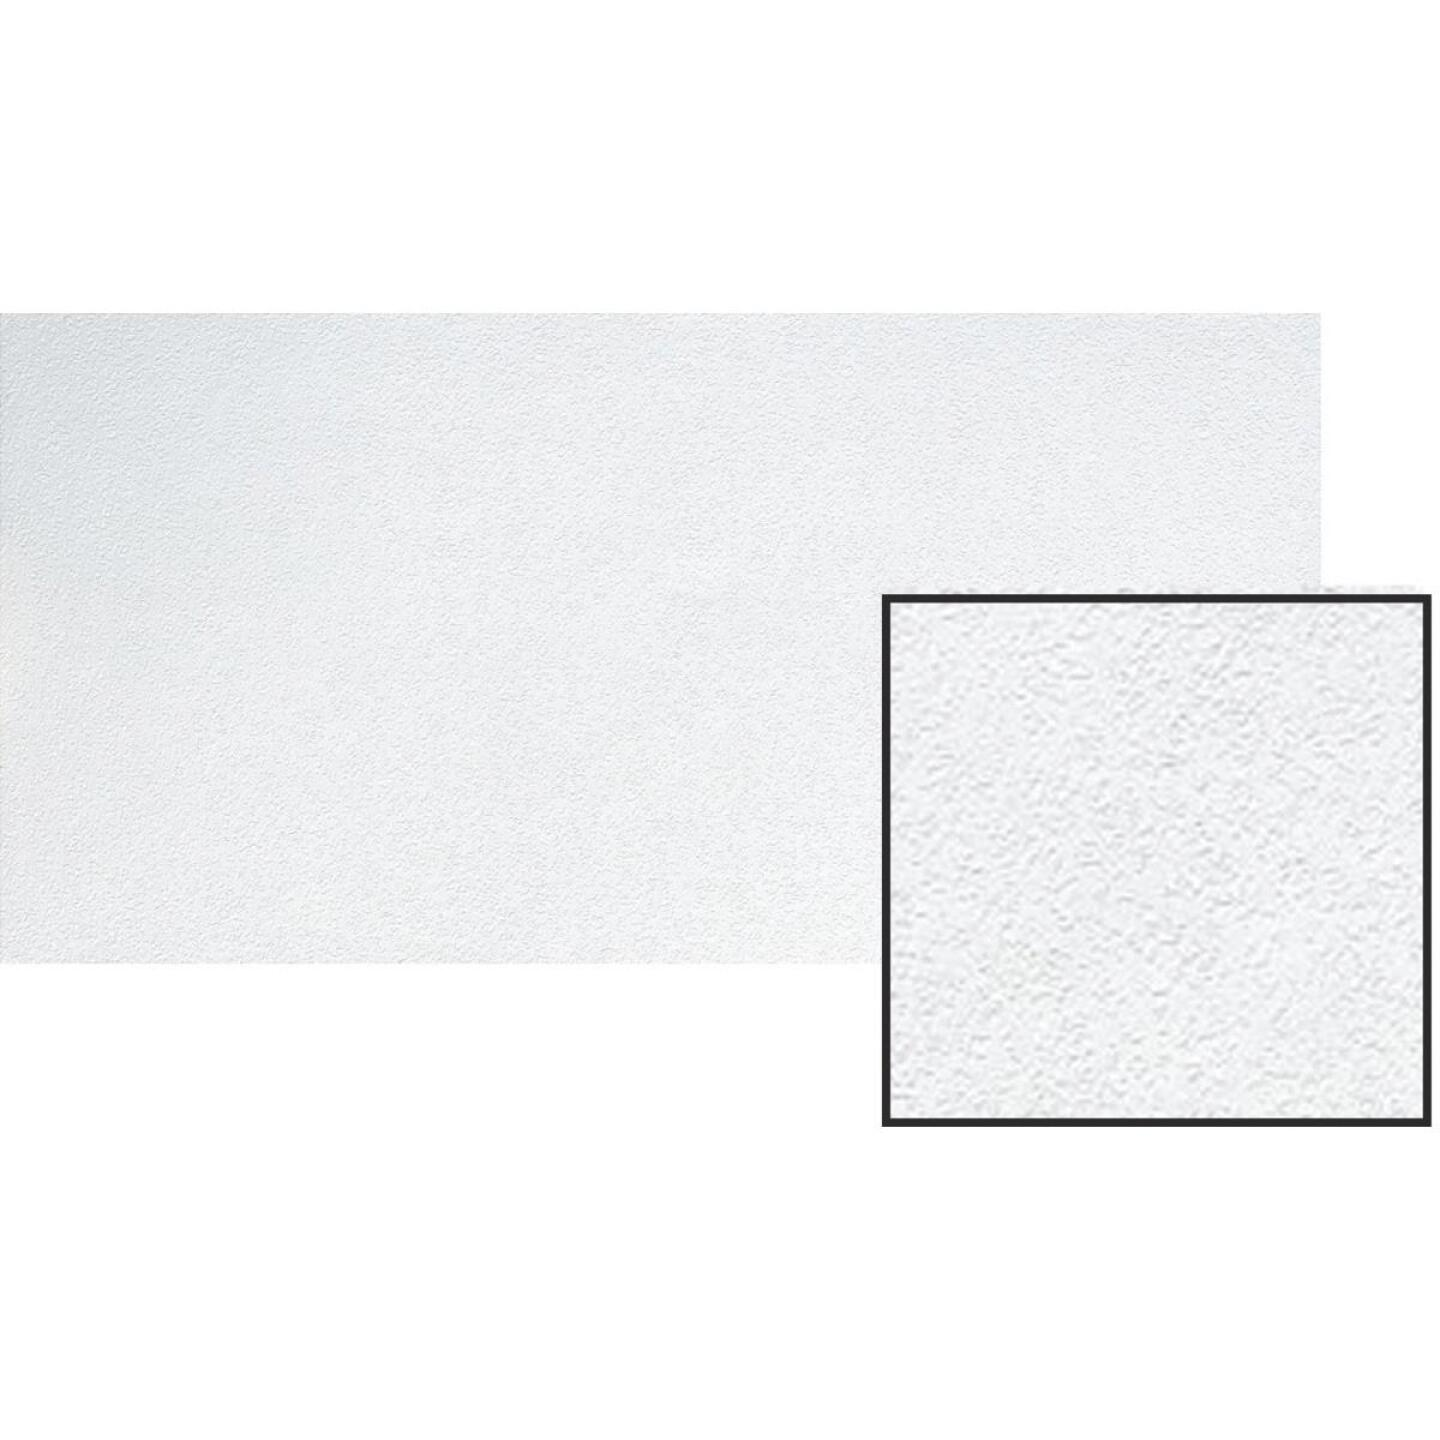 BP LifeStyle Fissured 2 Ft. x 4 Ft. White Wood Fiber Suspended Ceiling Tile (8-Count) Image 2